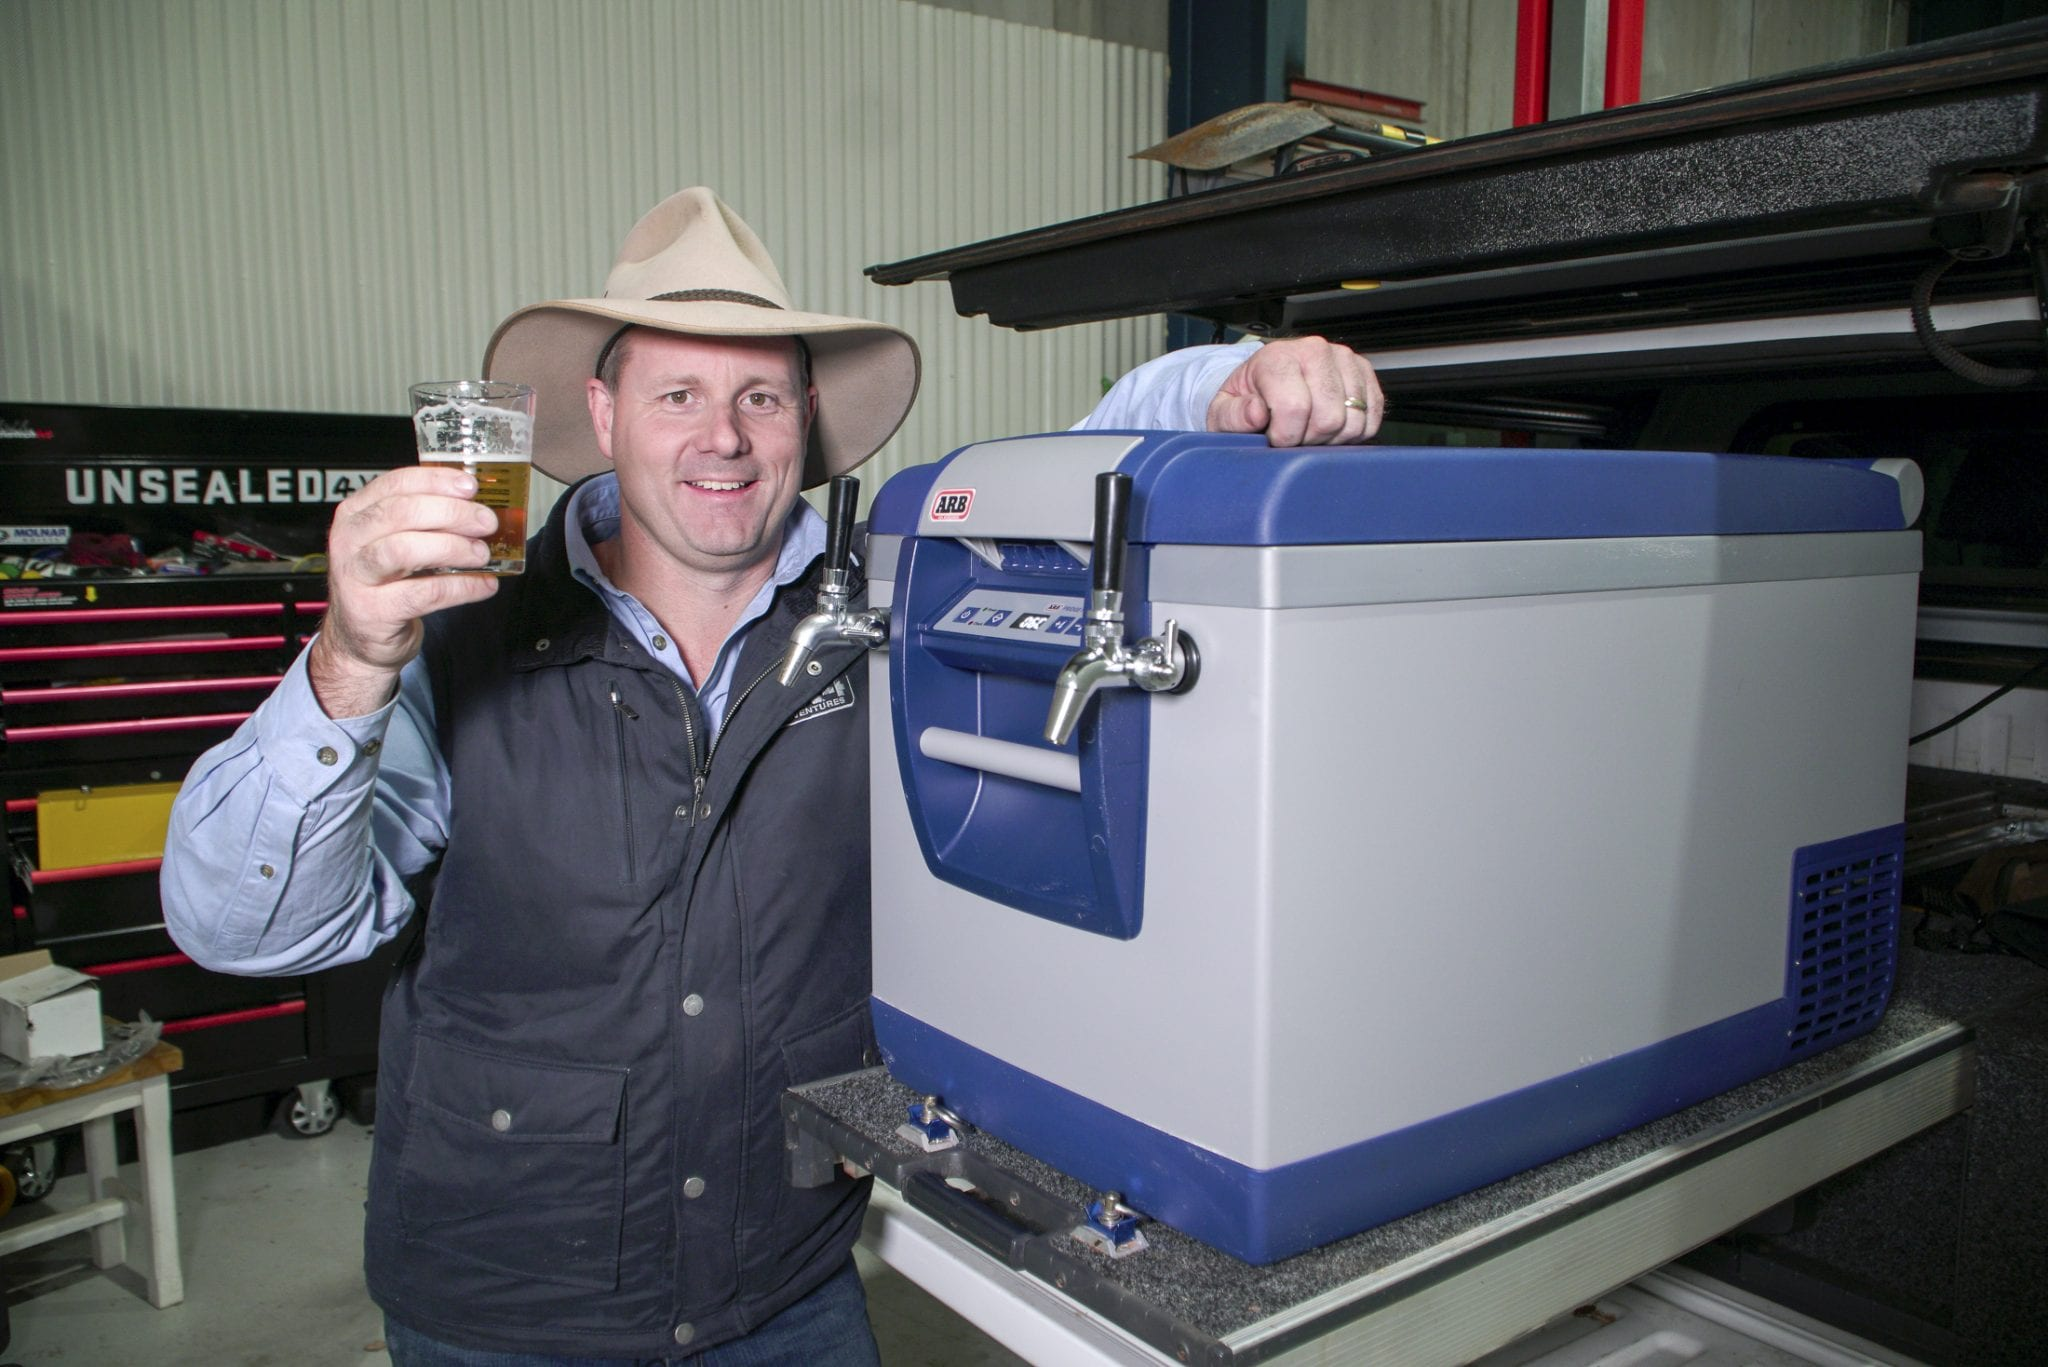 The best 4WD modification ever? Beer on tap!